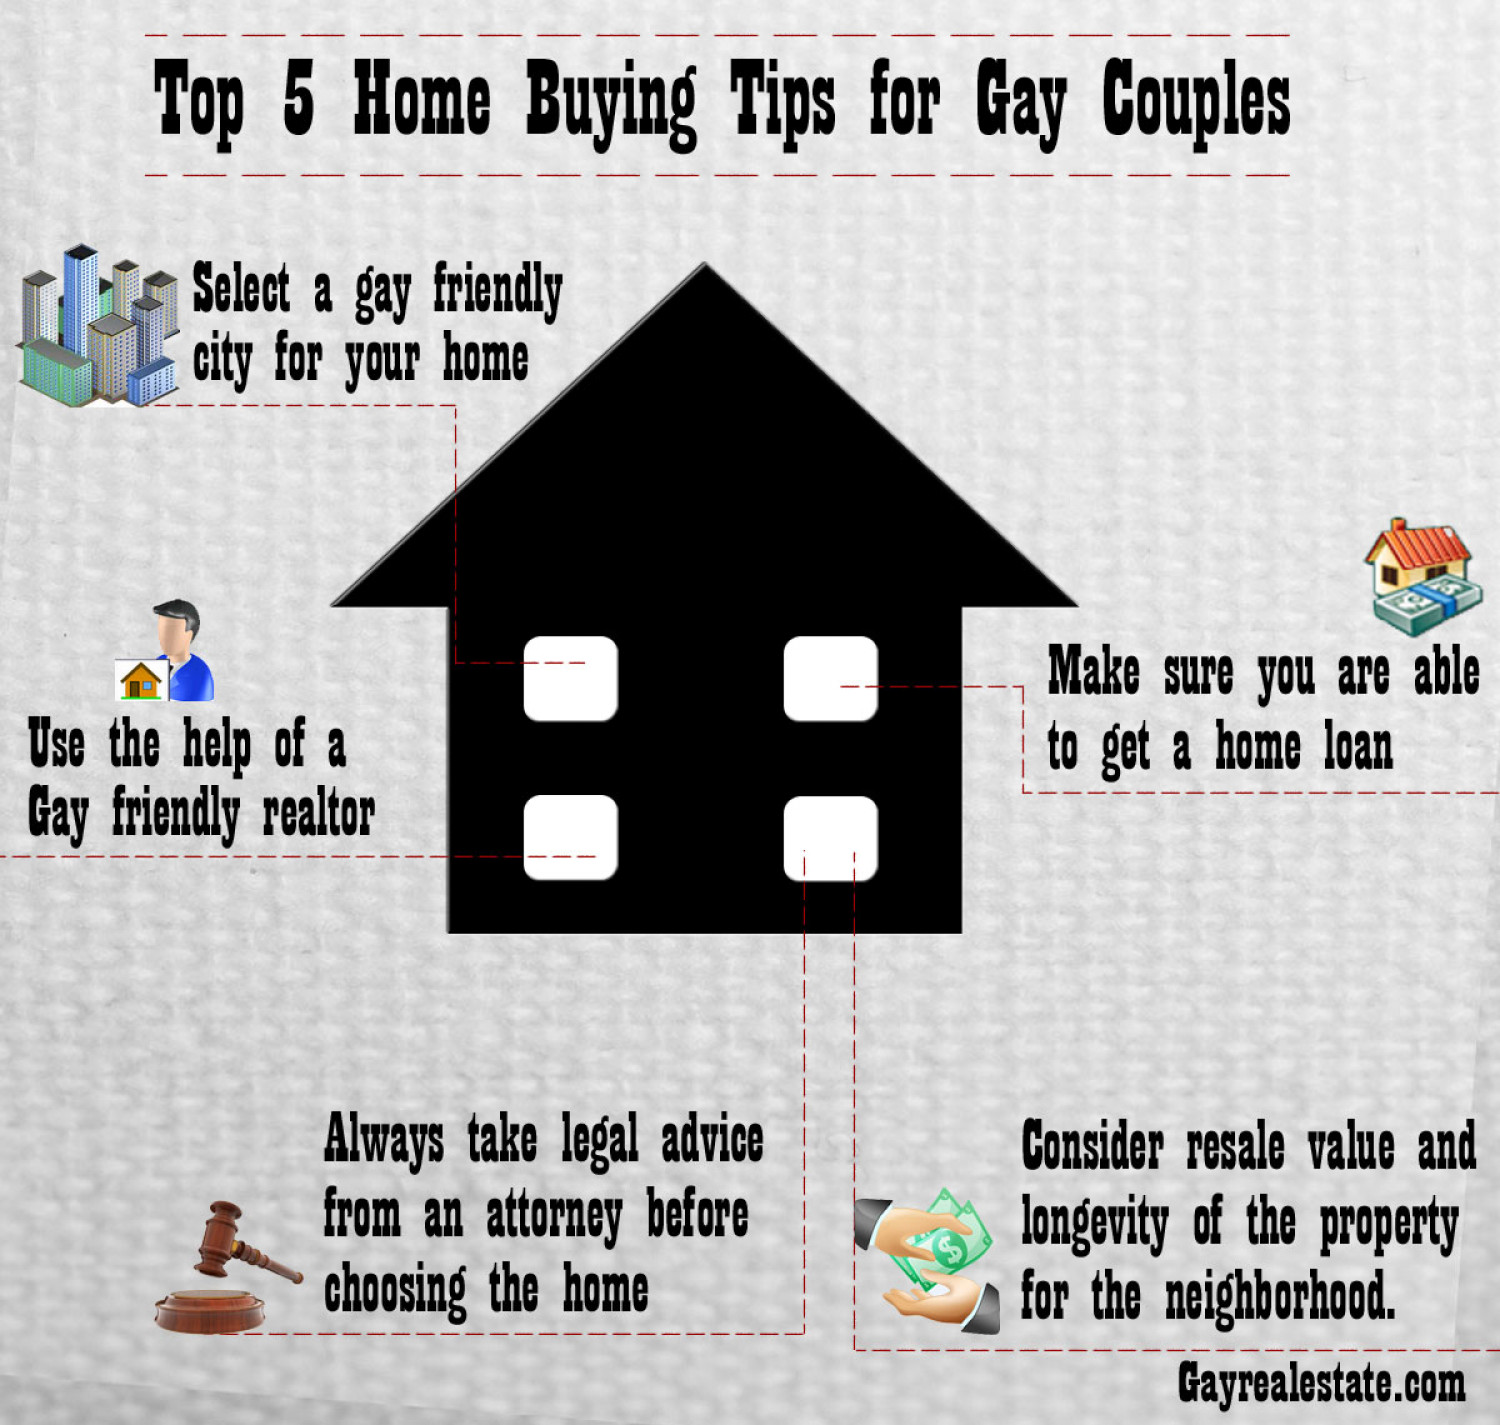 Top 5 Home Buying Tips for Gay Couples Infographic